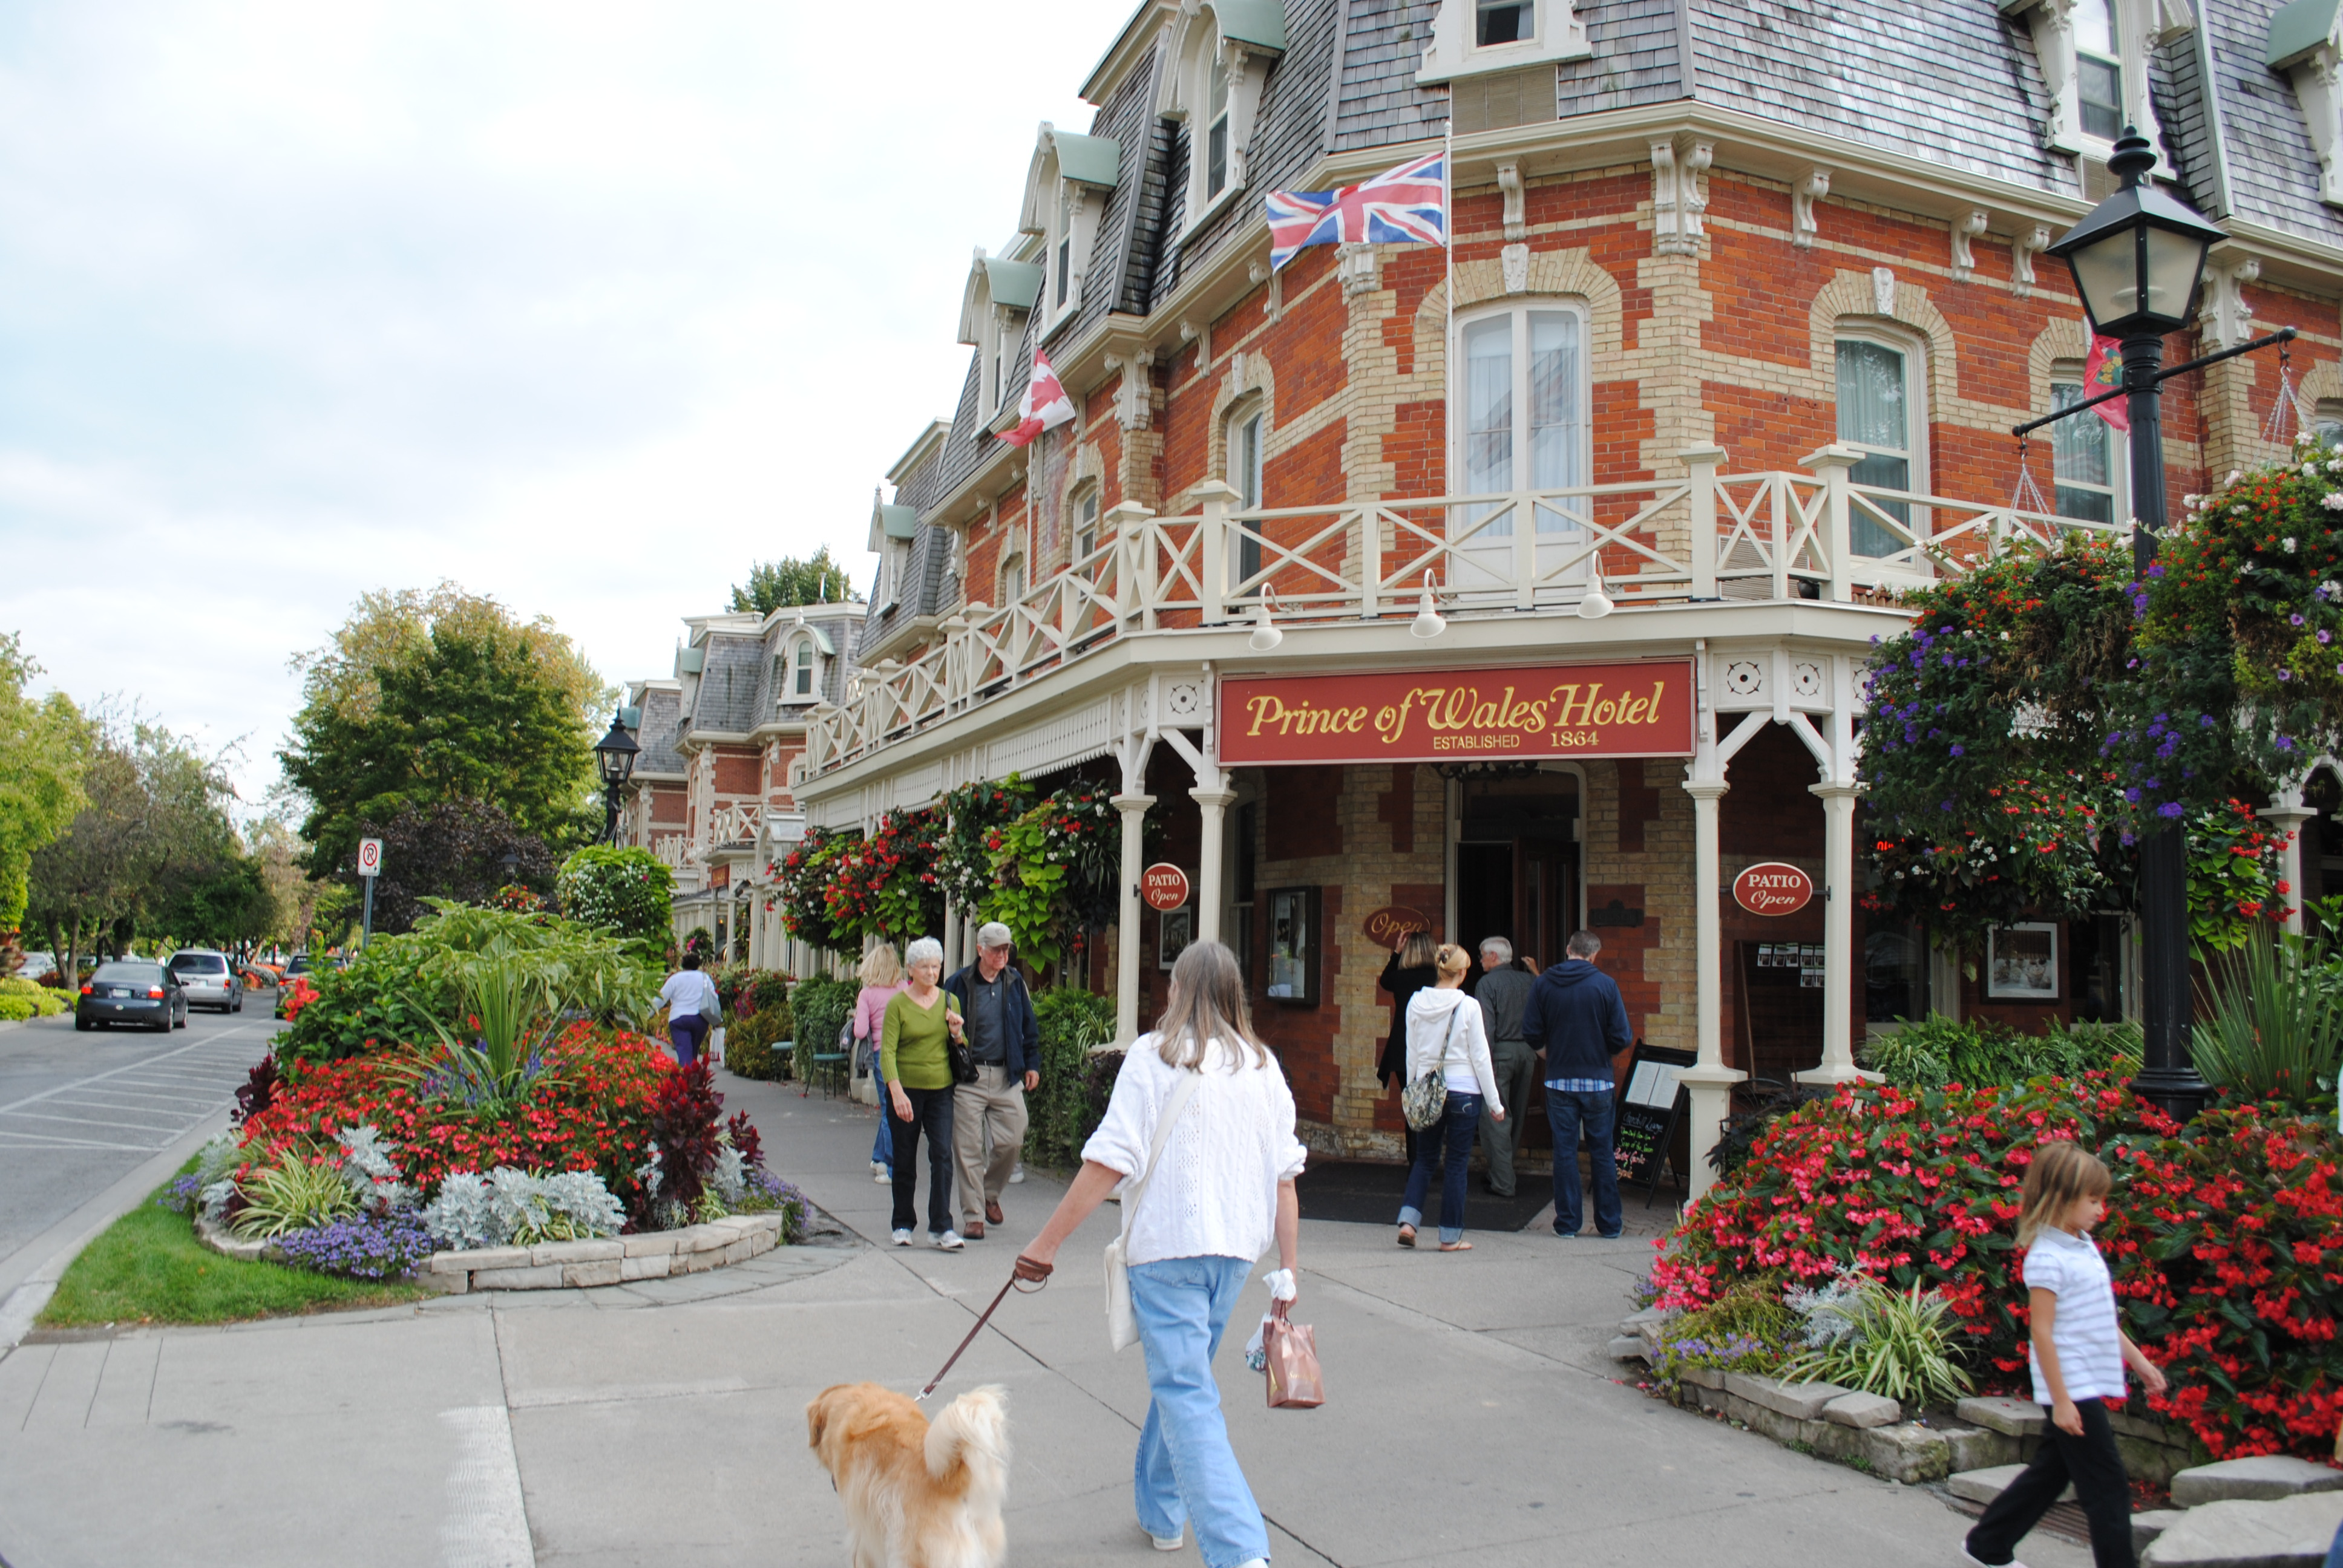 Niagara on the Lake, Ontario: The quaint village is a real charmer during autumn